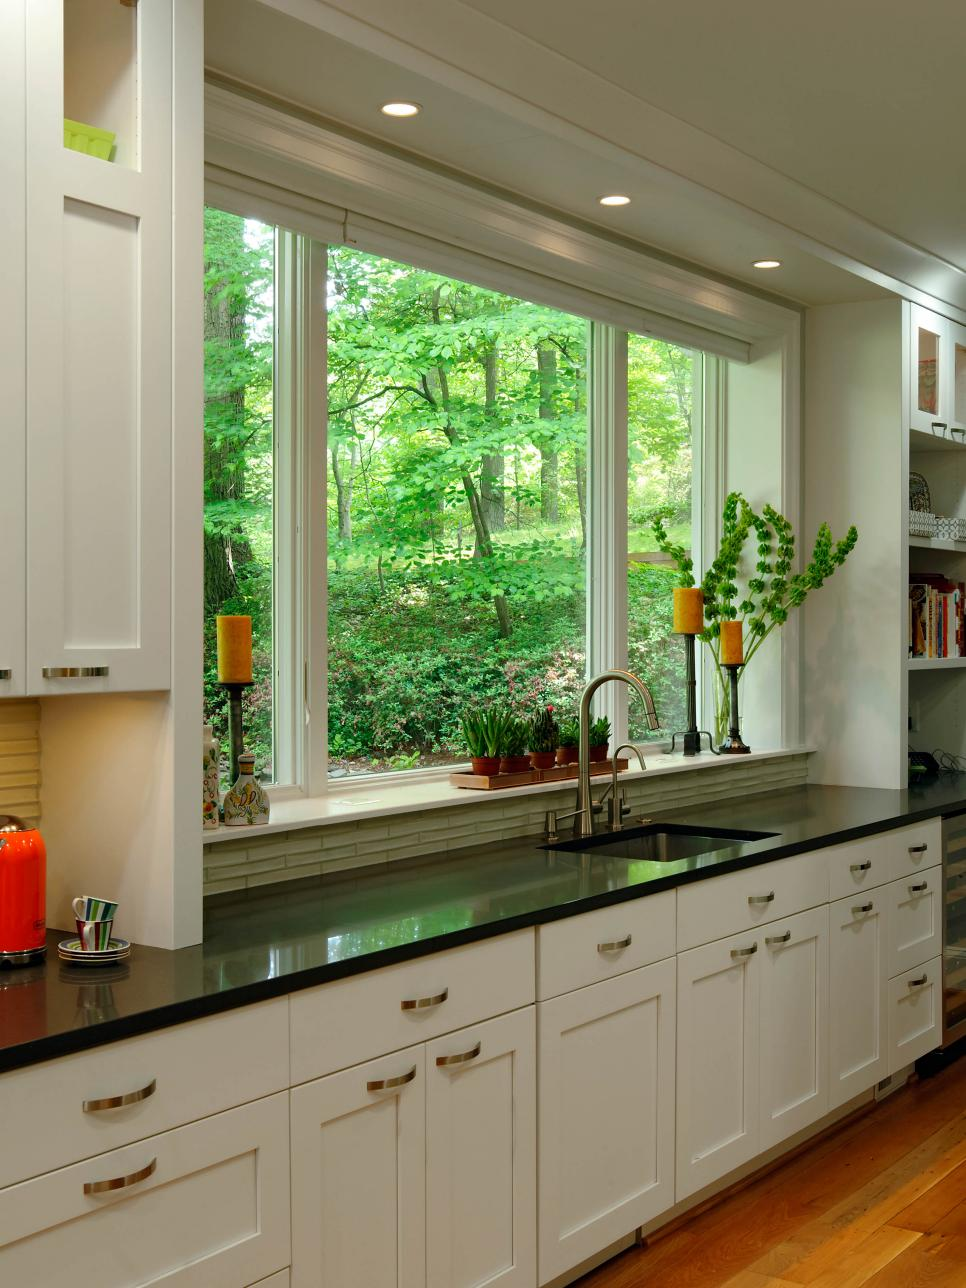 Kitchen window pictures the best options styles ideas for Kitchen ideas no window